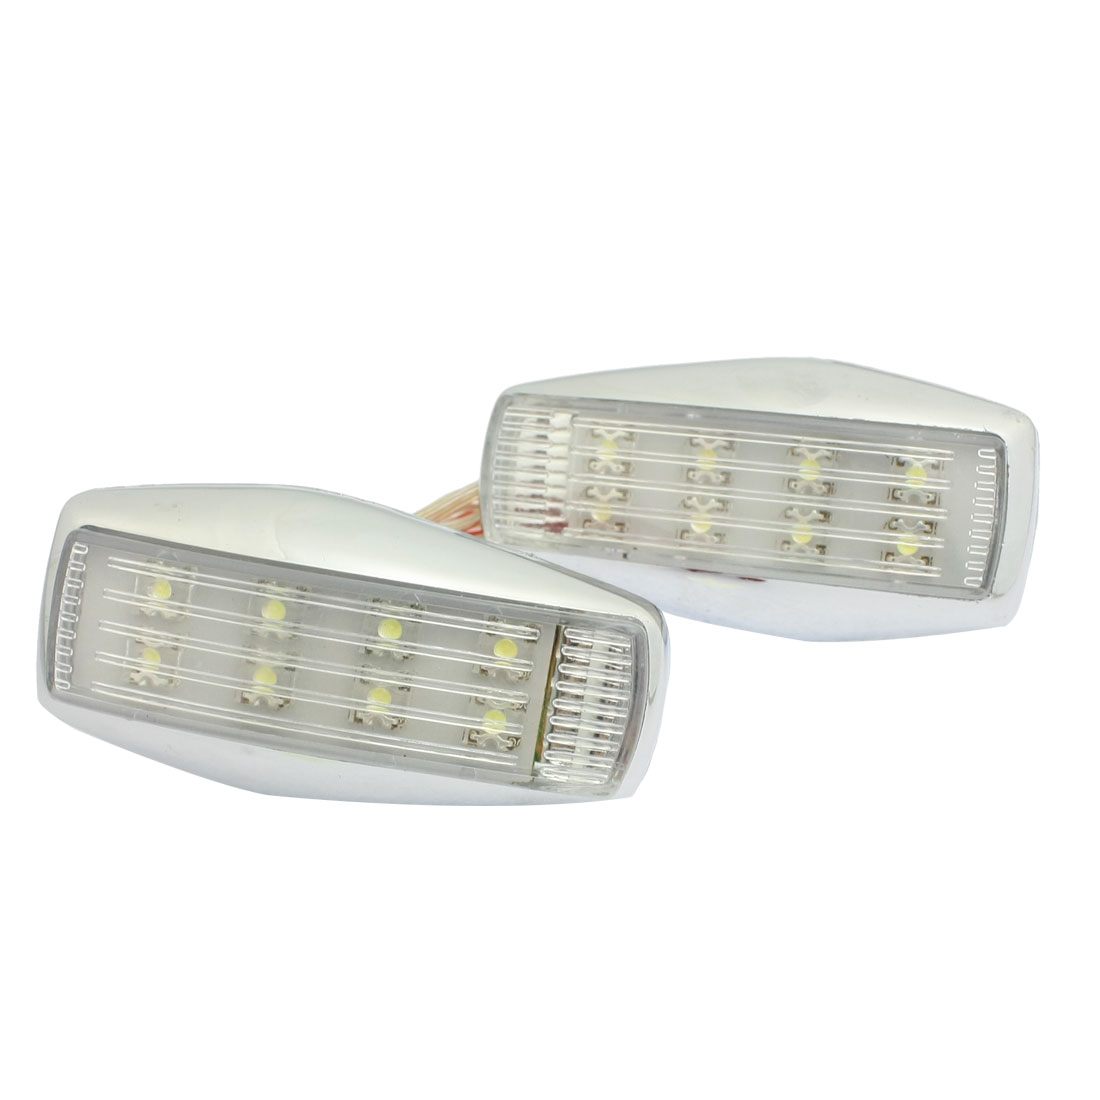 2 Pcs White 8 LED Car Trailer Bumper Side Marker Light Lamp Wire DC 12V